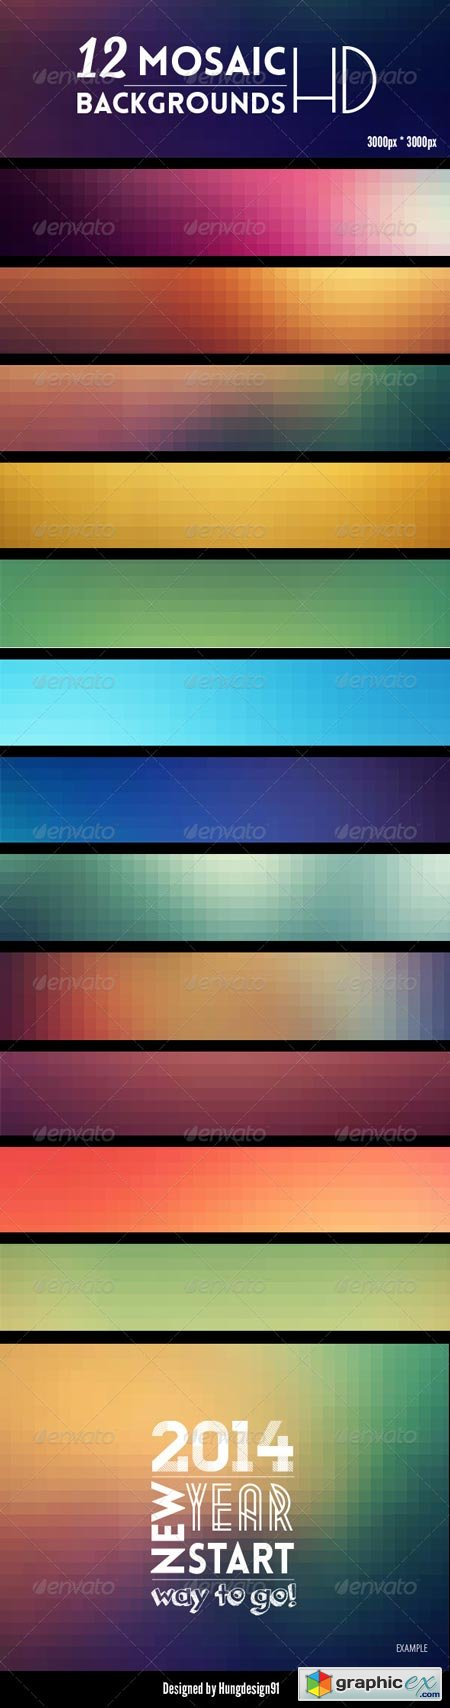 12 Mosaic Backgrounds HD 6865992